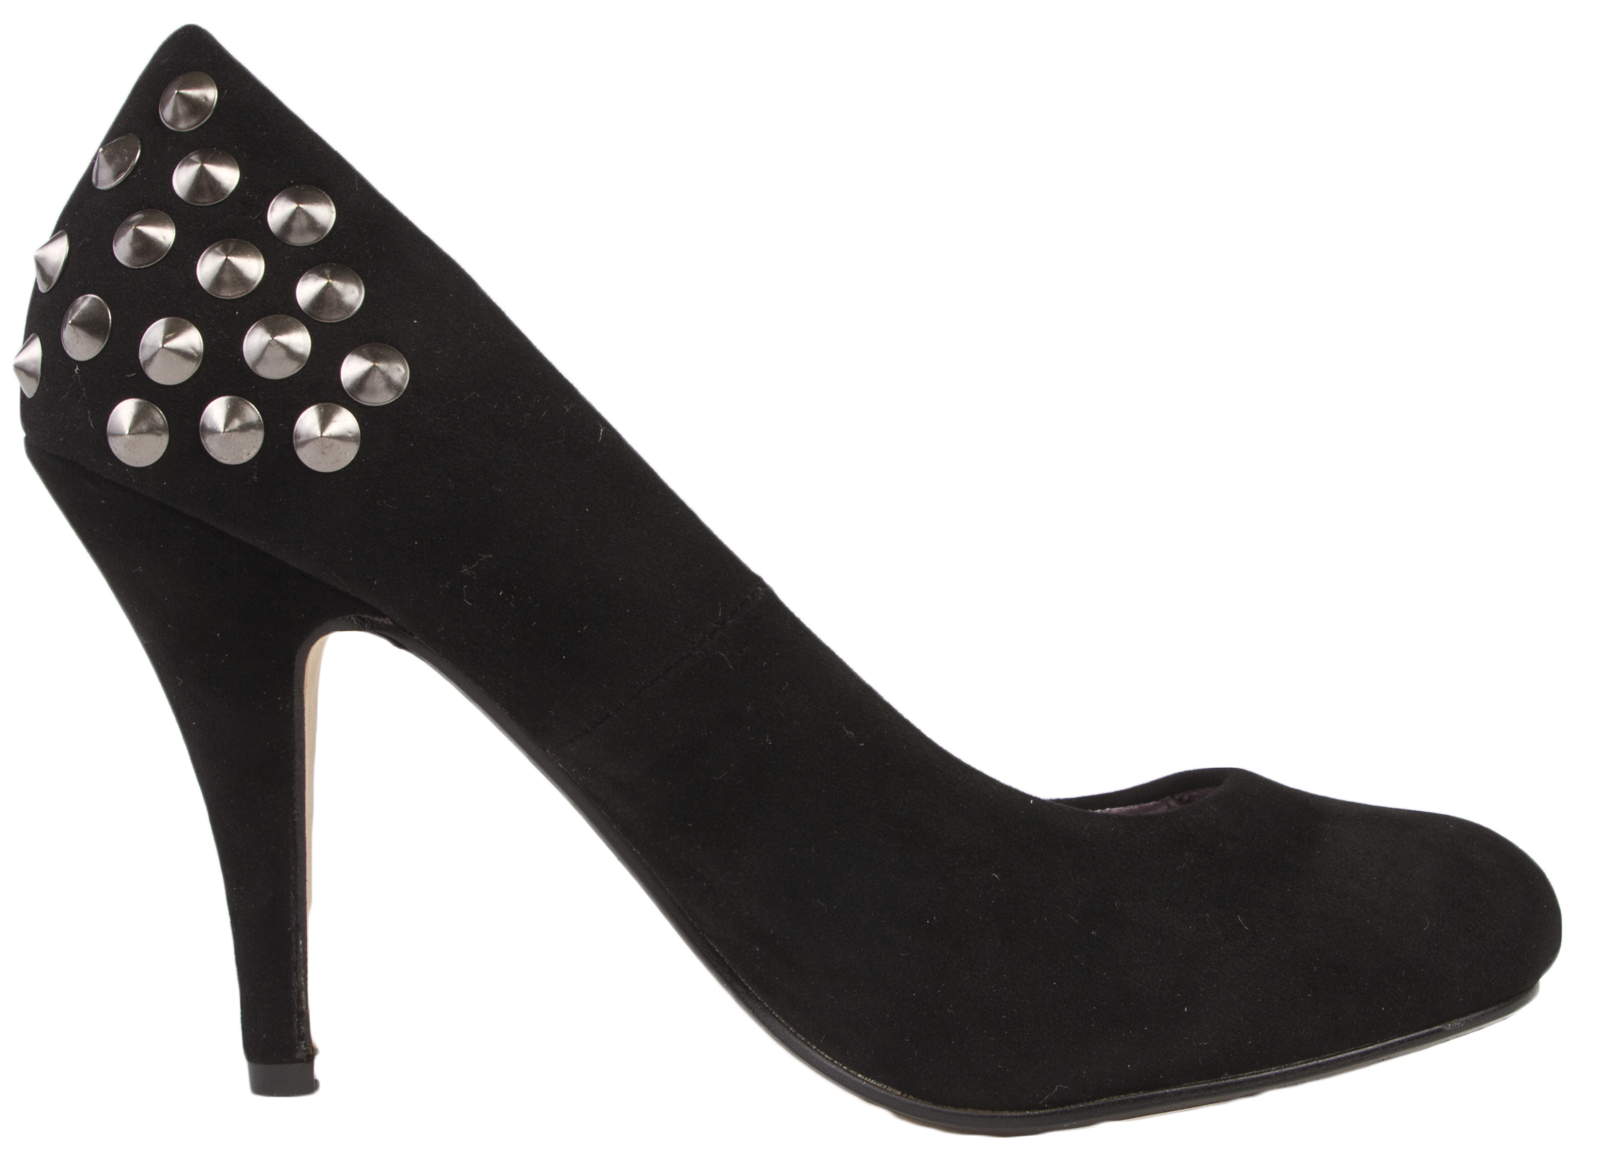 Womens Faux Suede Stiletto High Heels Spike Studded Court ...